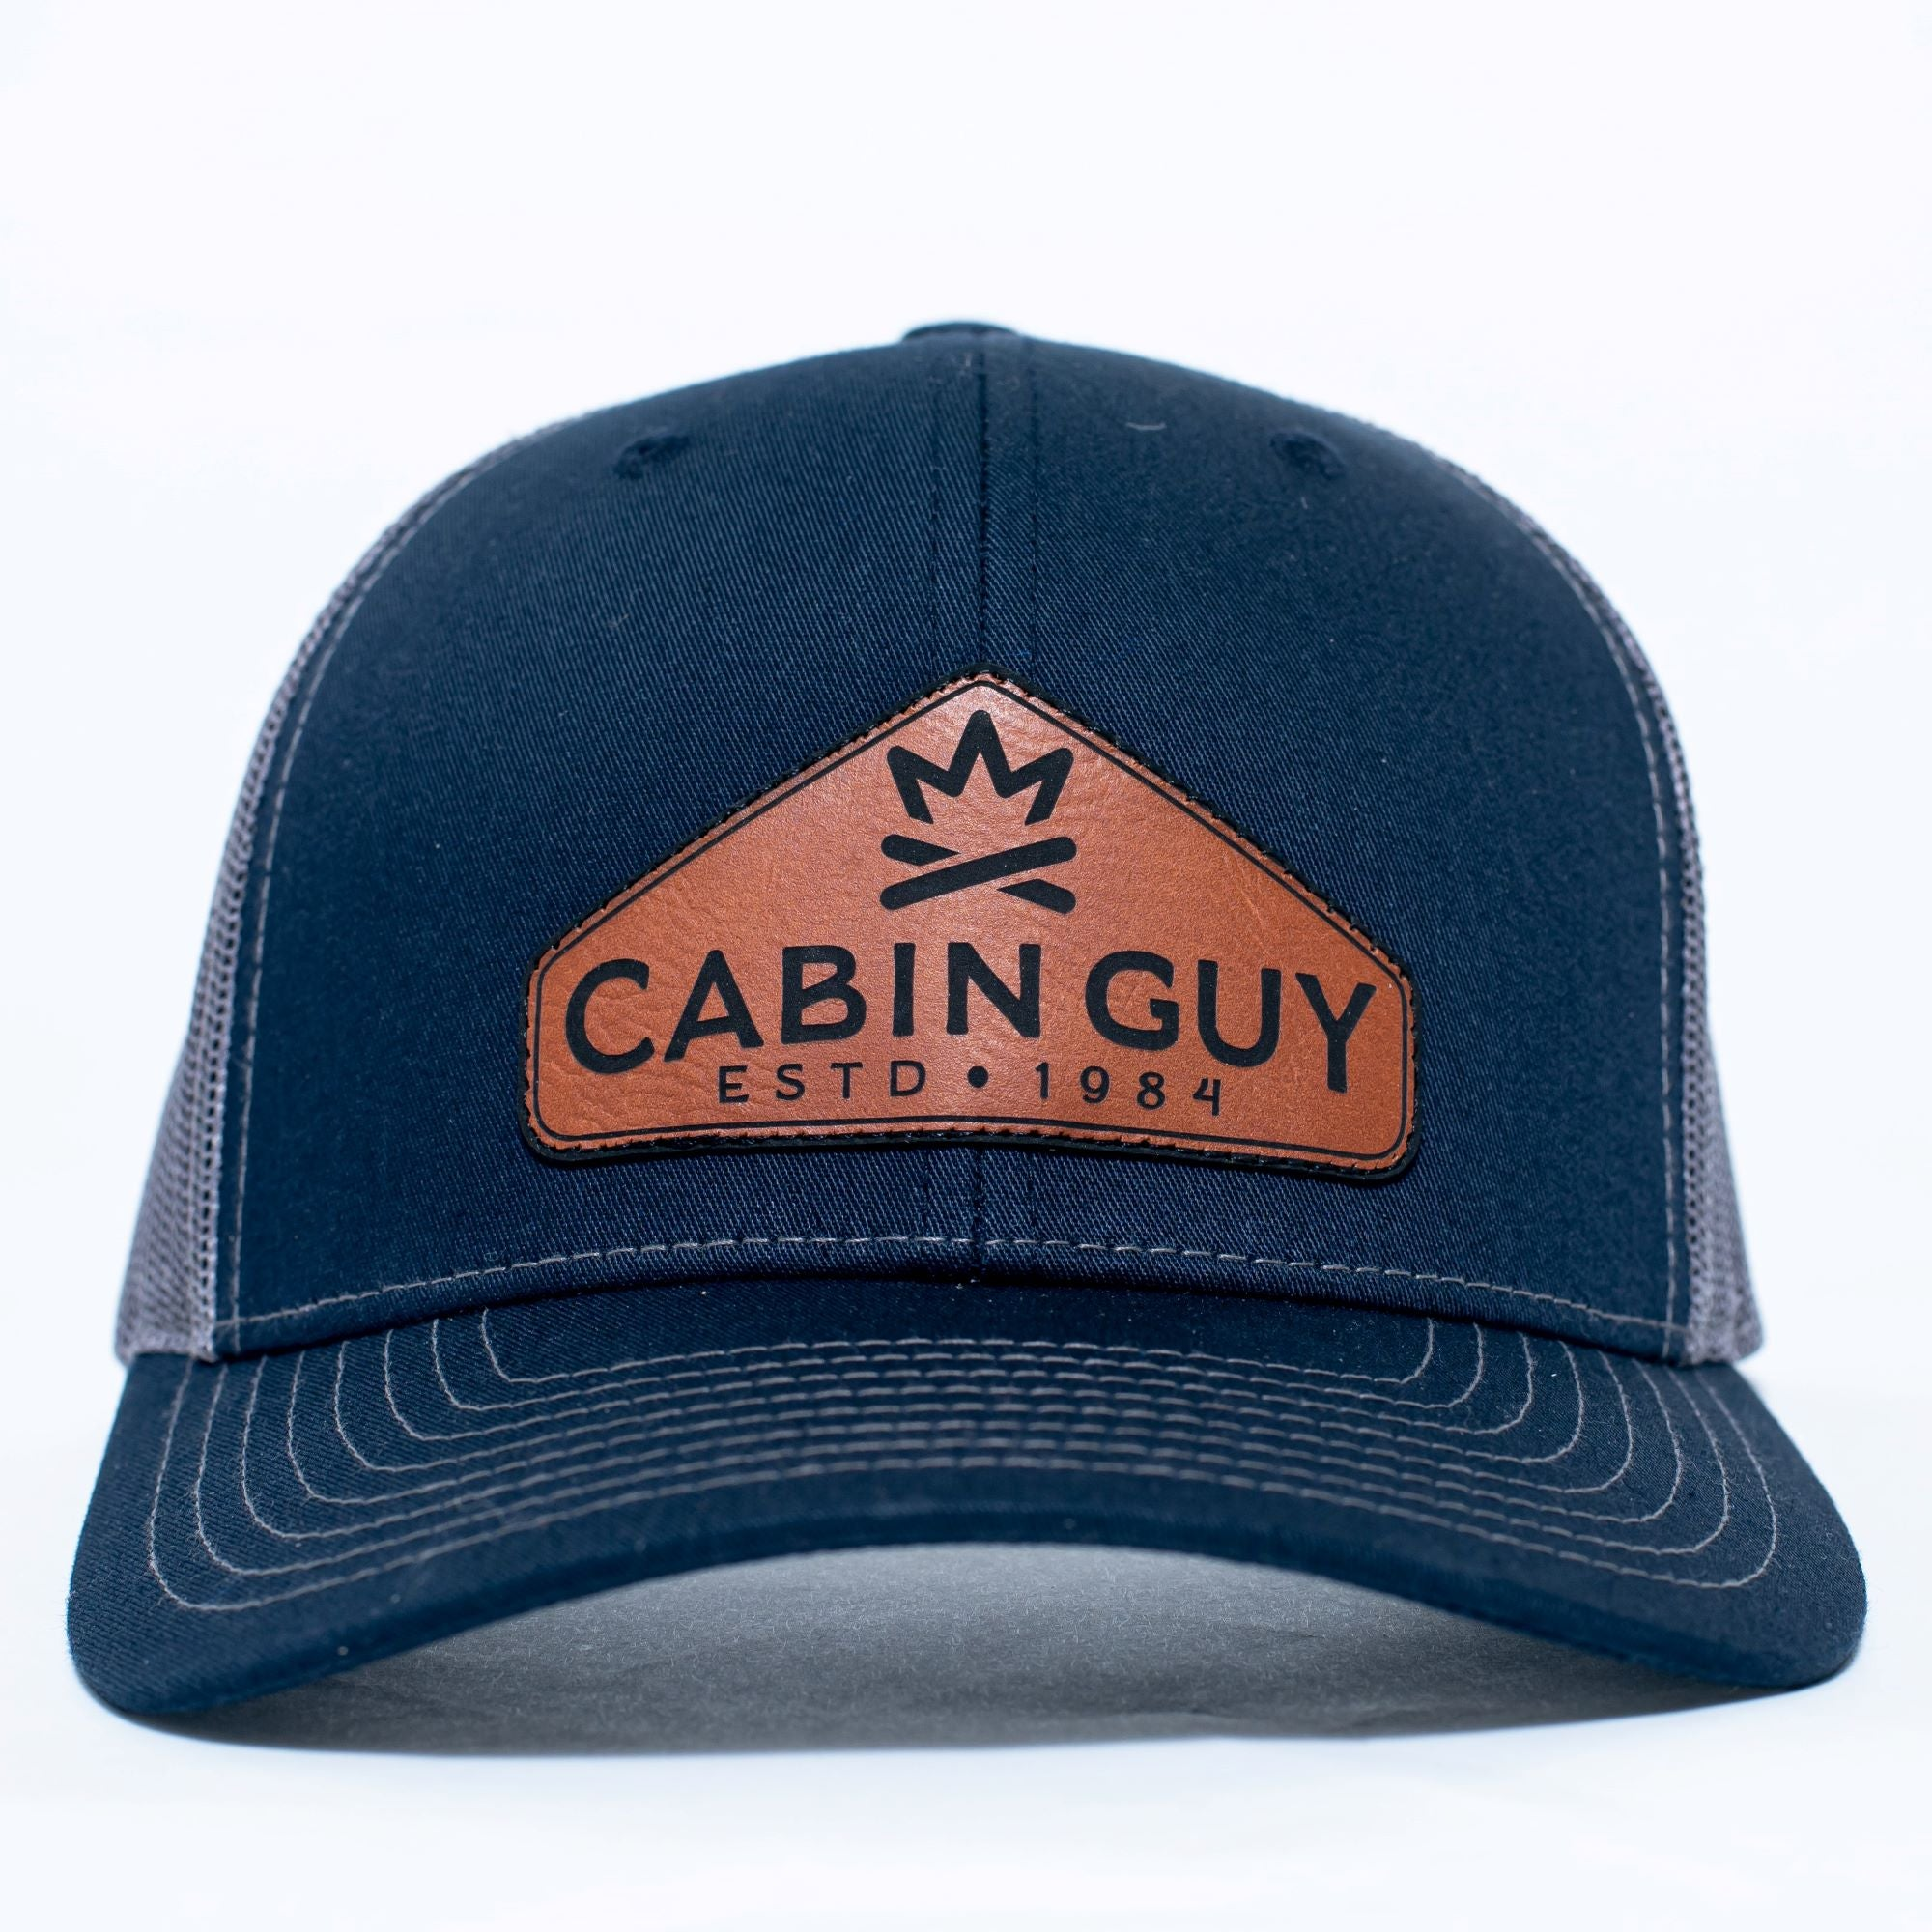 Yosemite El Capitan Cabin Guy Patch Hat